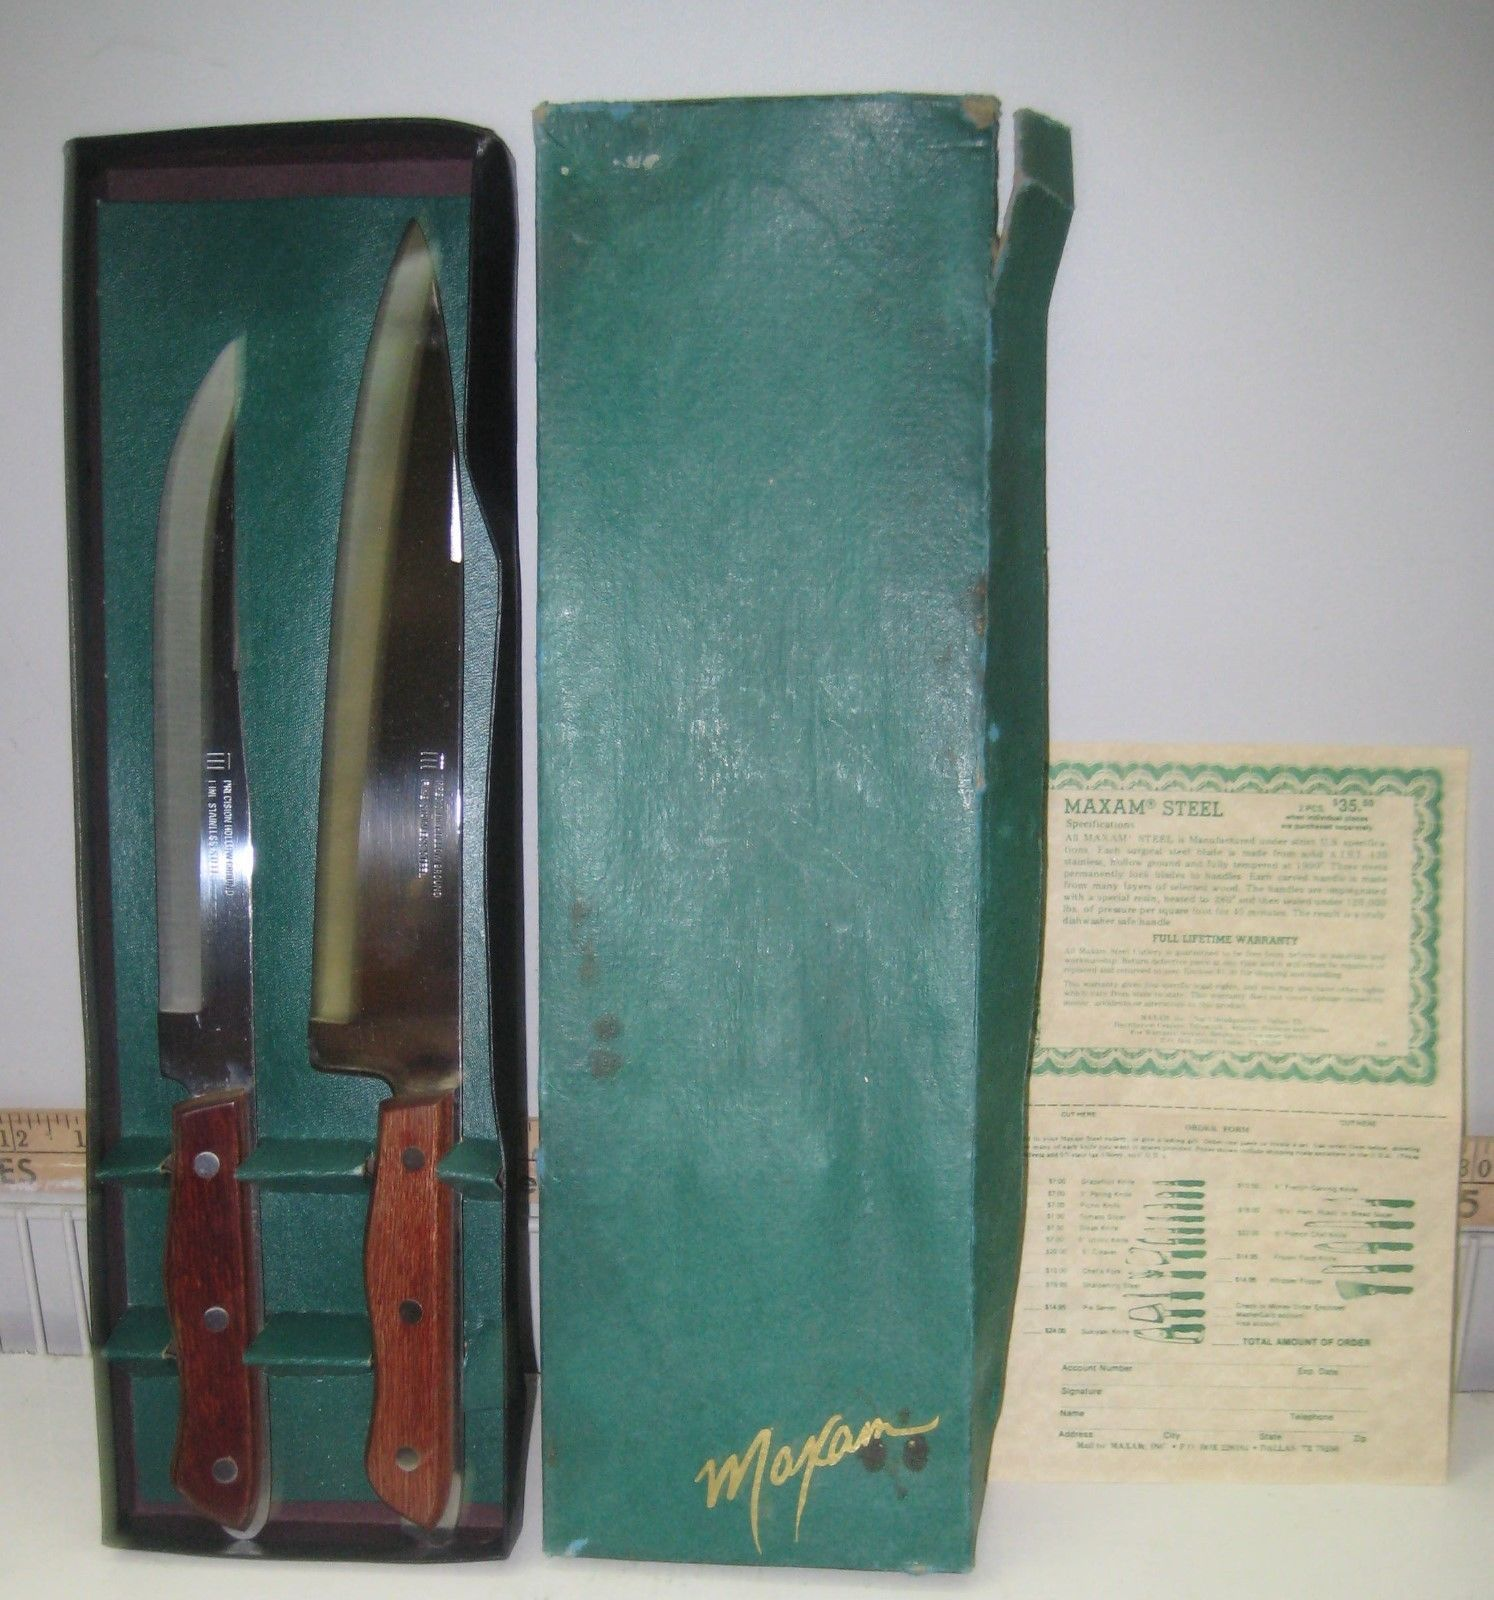 Vintage maxam stainless steel kitchen chef carving knife